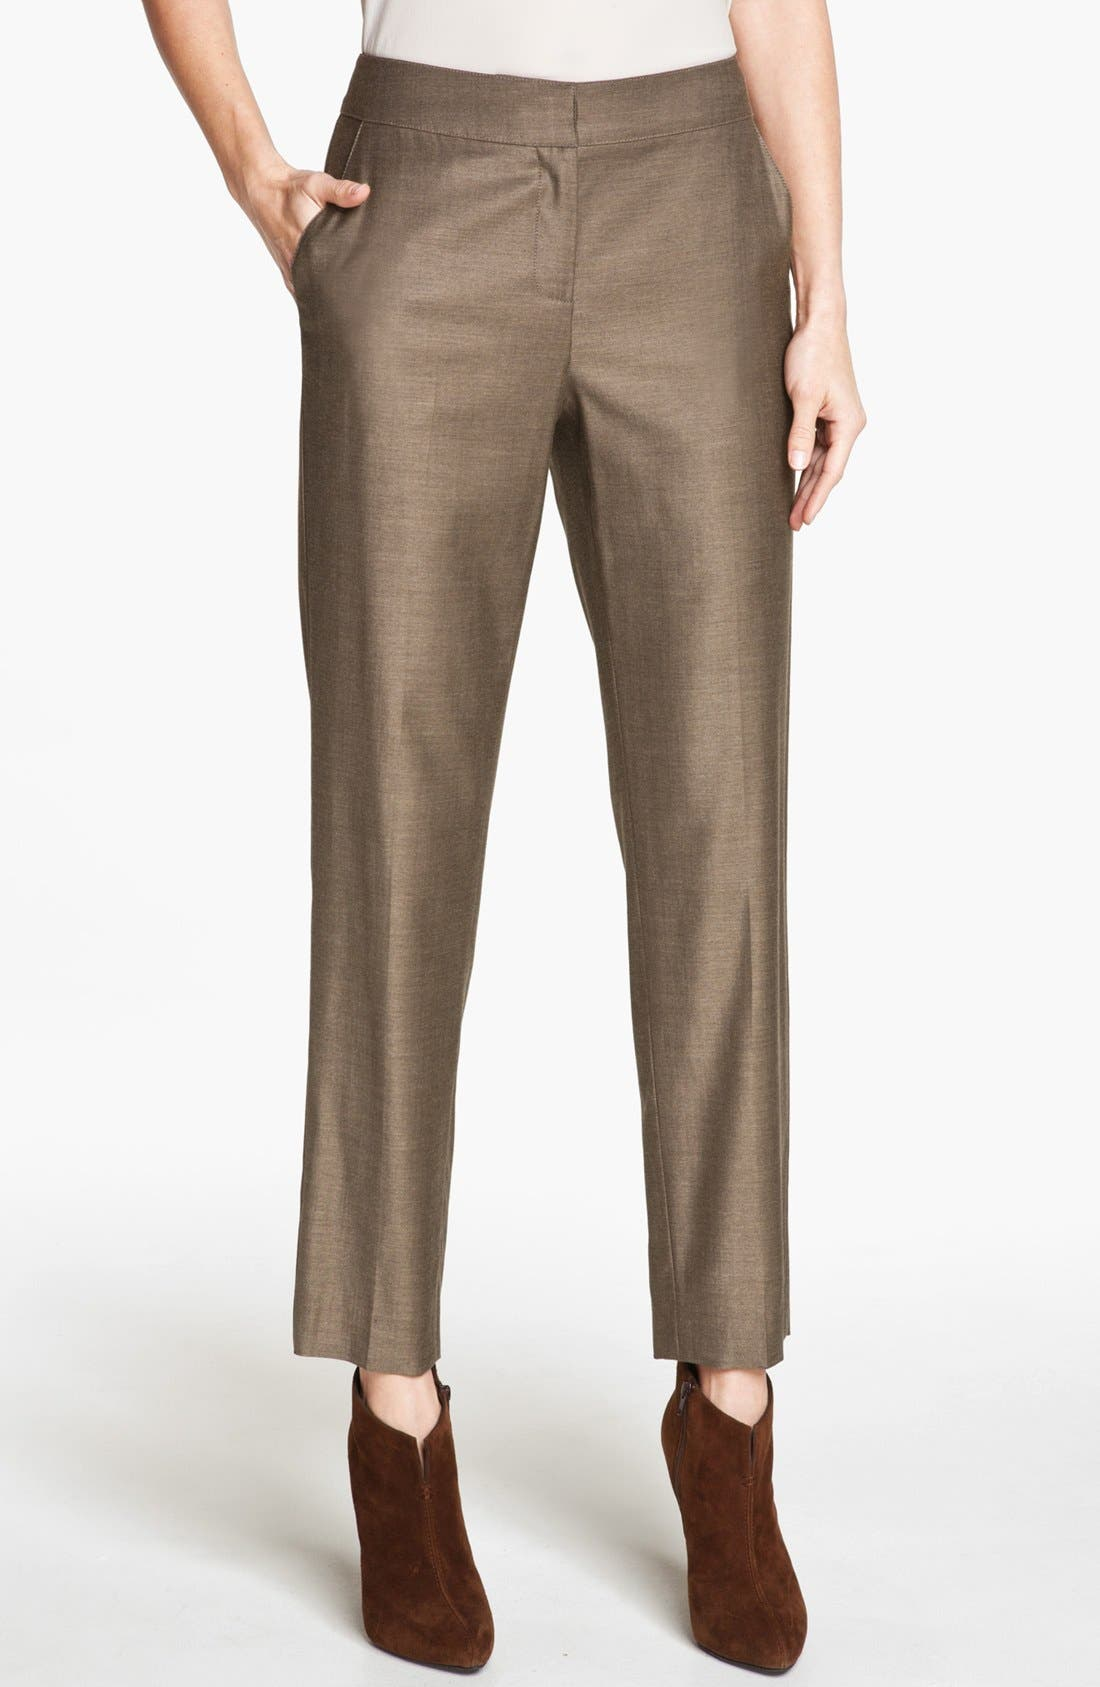 Main Image - St. John Collection 'Emma' Shimmer Twill Crop Pants